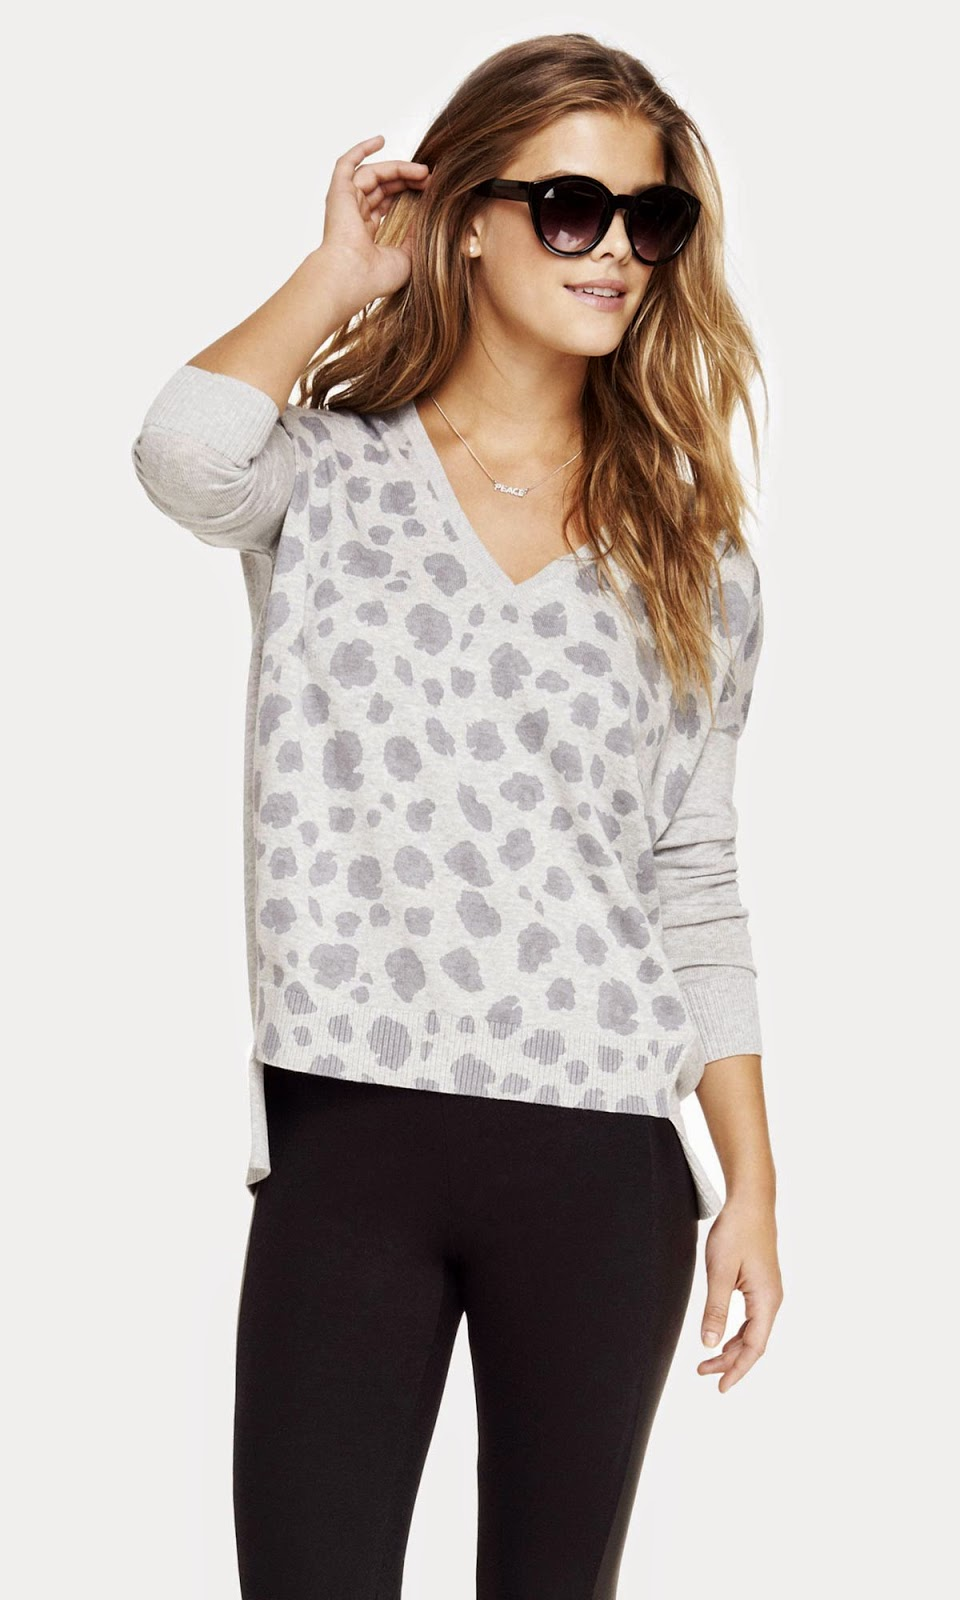 Nina Agdal poses for Express Collection's 2014 Lookbook